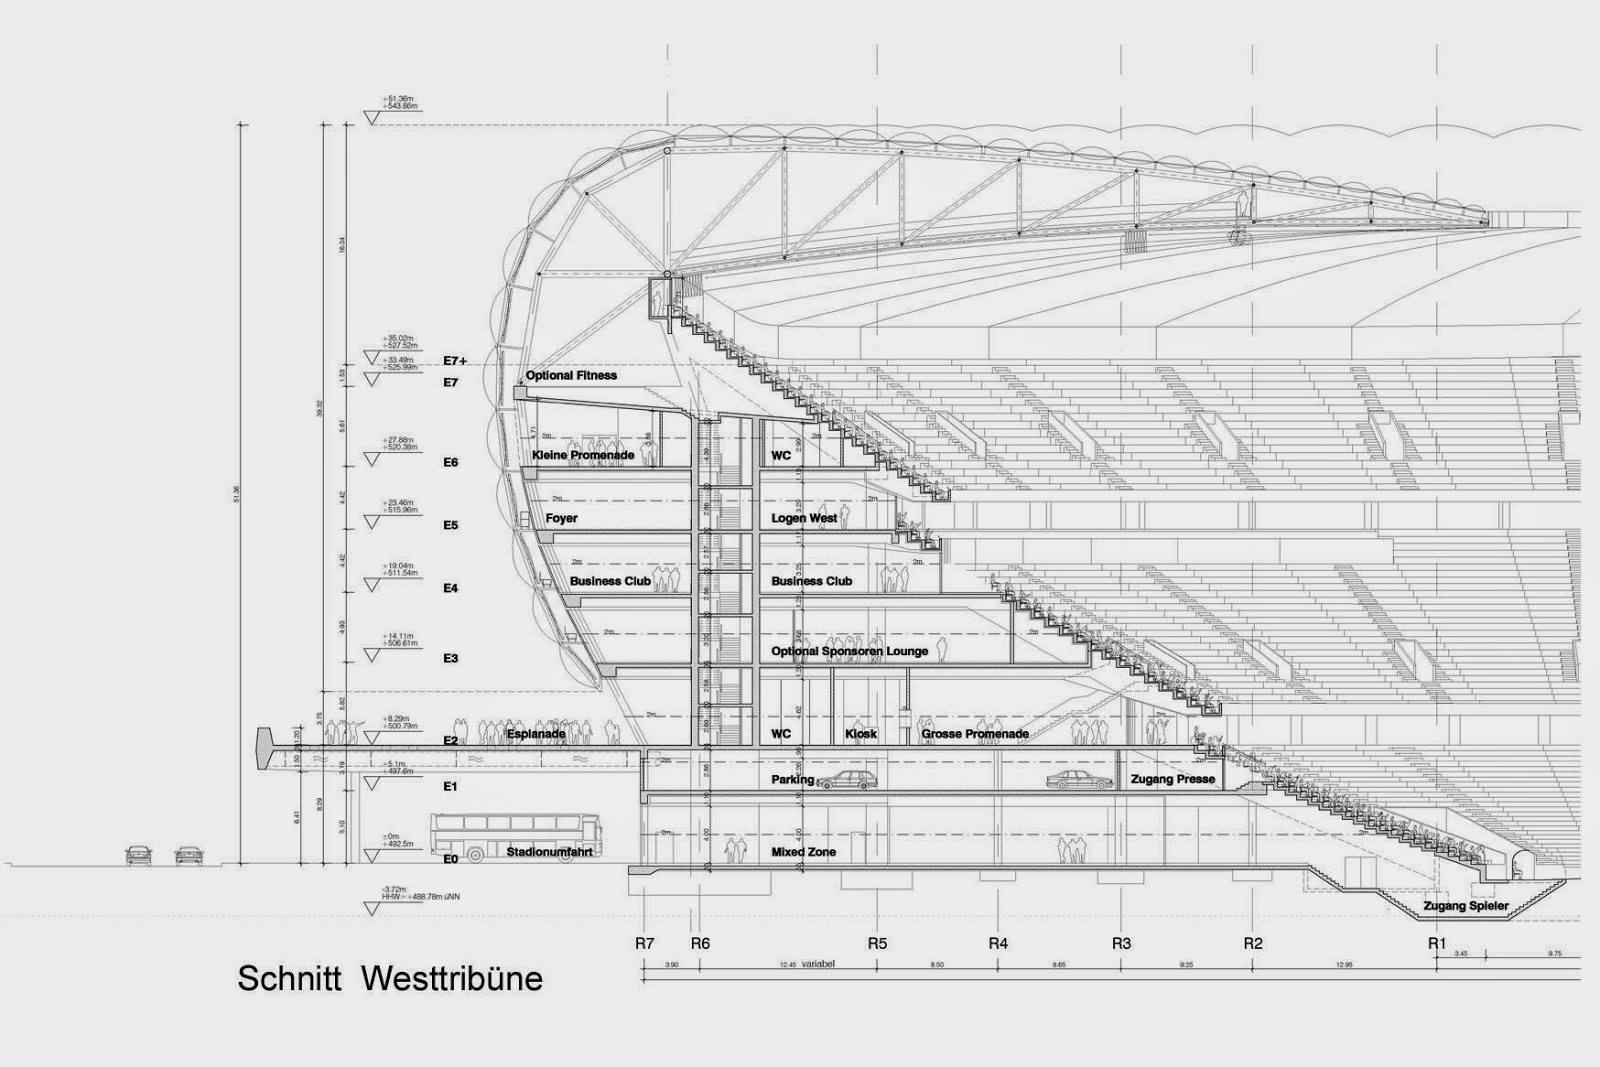 Allianz arena architectural drawings plans designs for Architecture blueprints